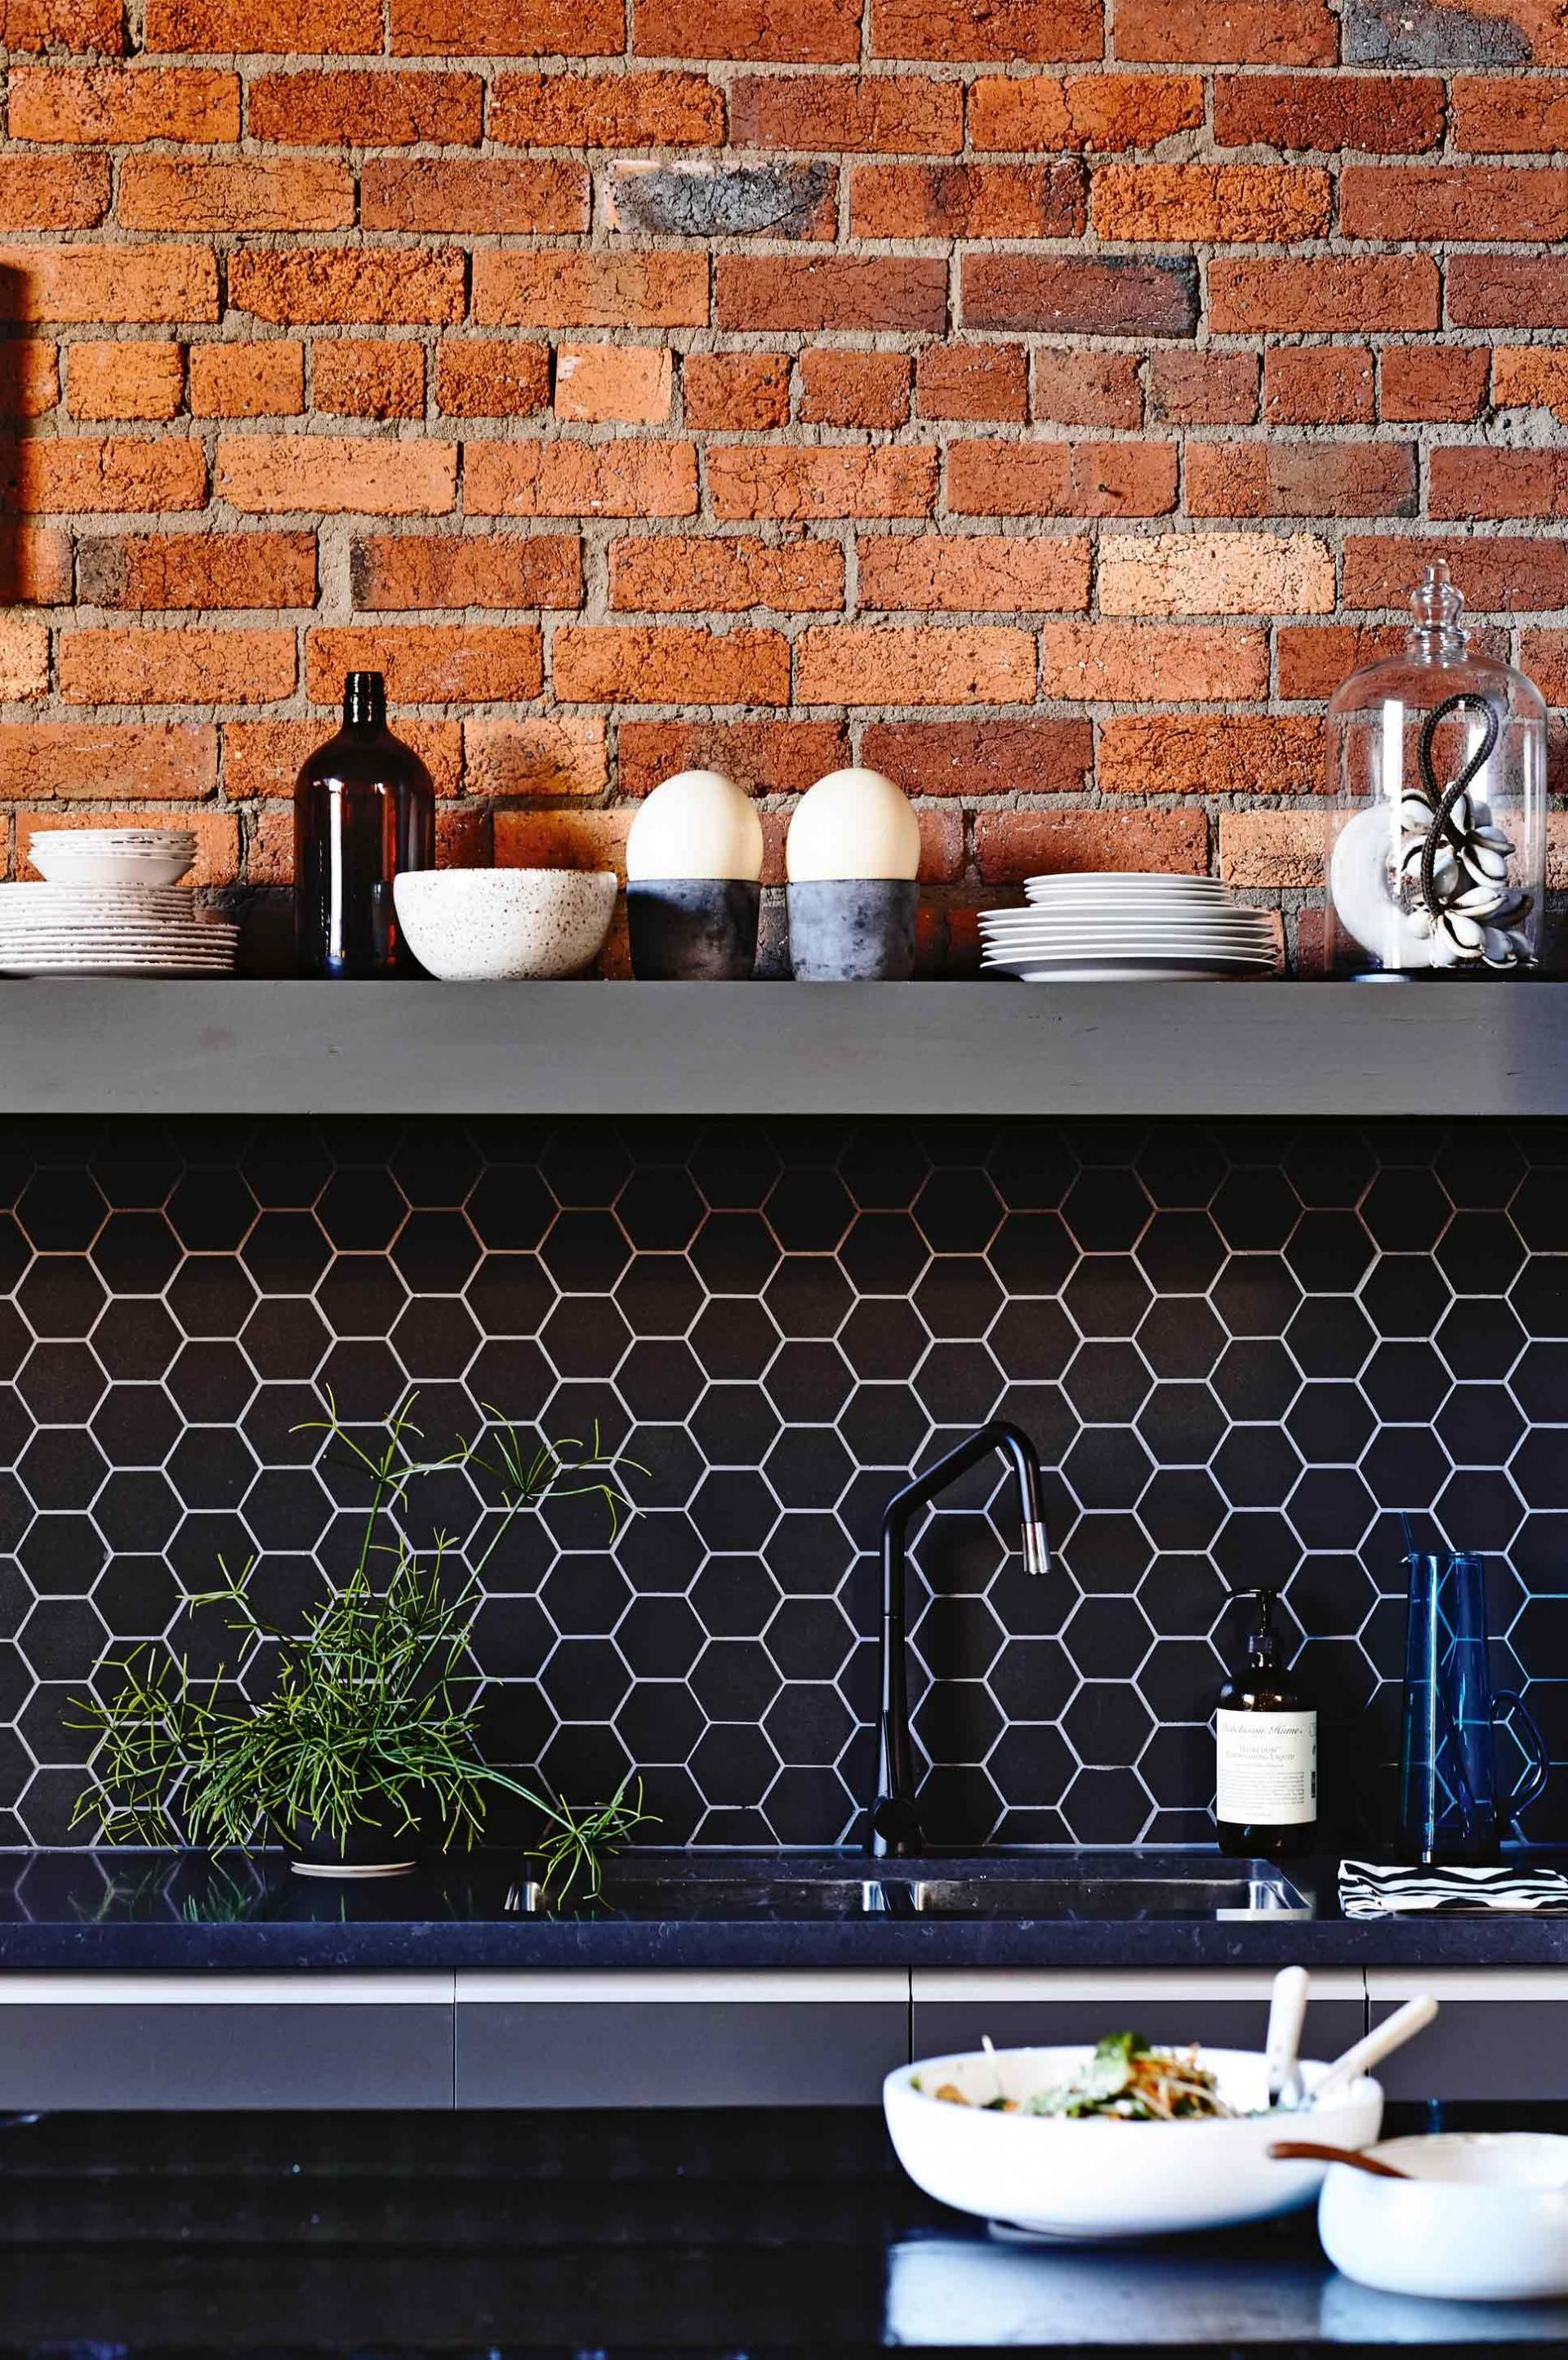 Kitchen Splashbacks 8 Ideas Almost Too Hot To Handle Like